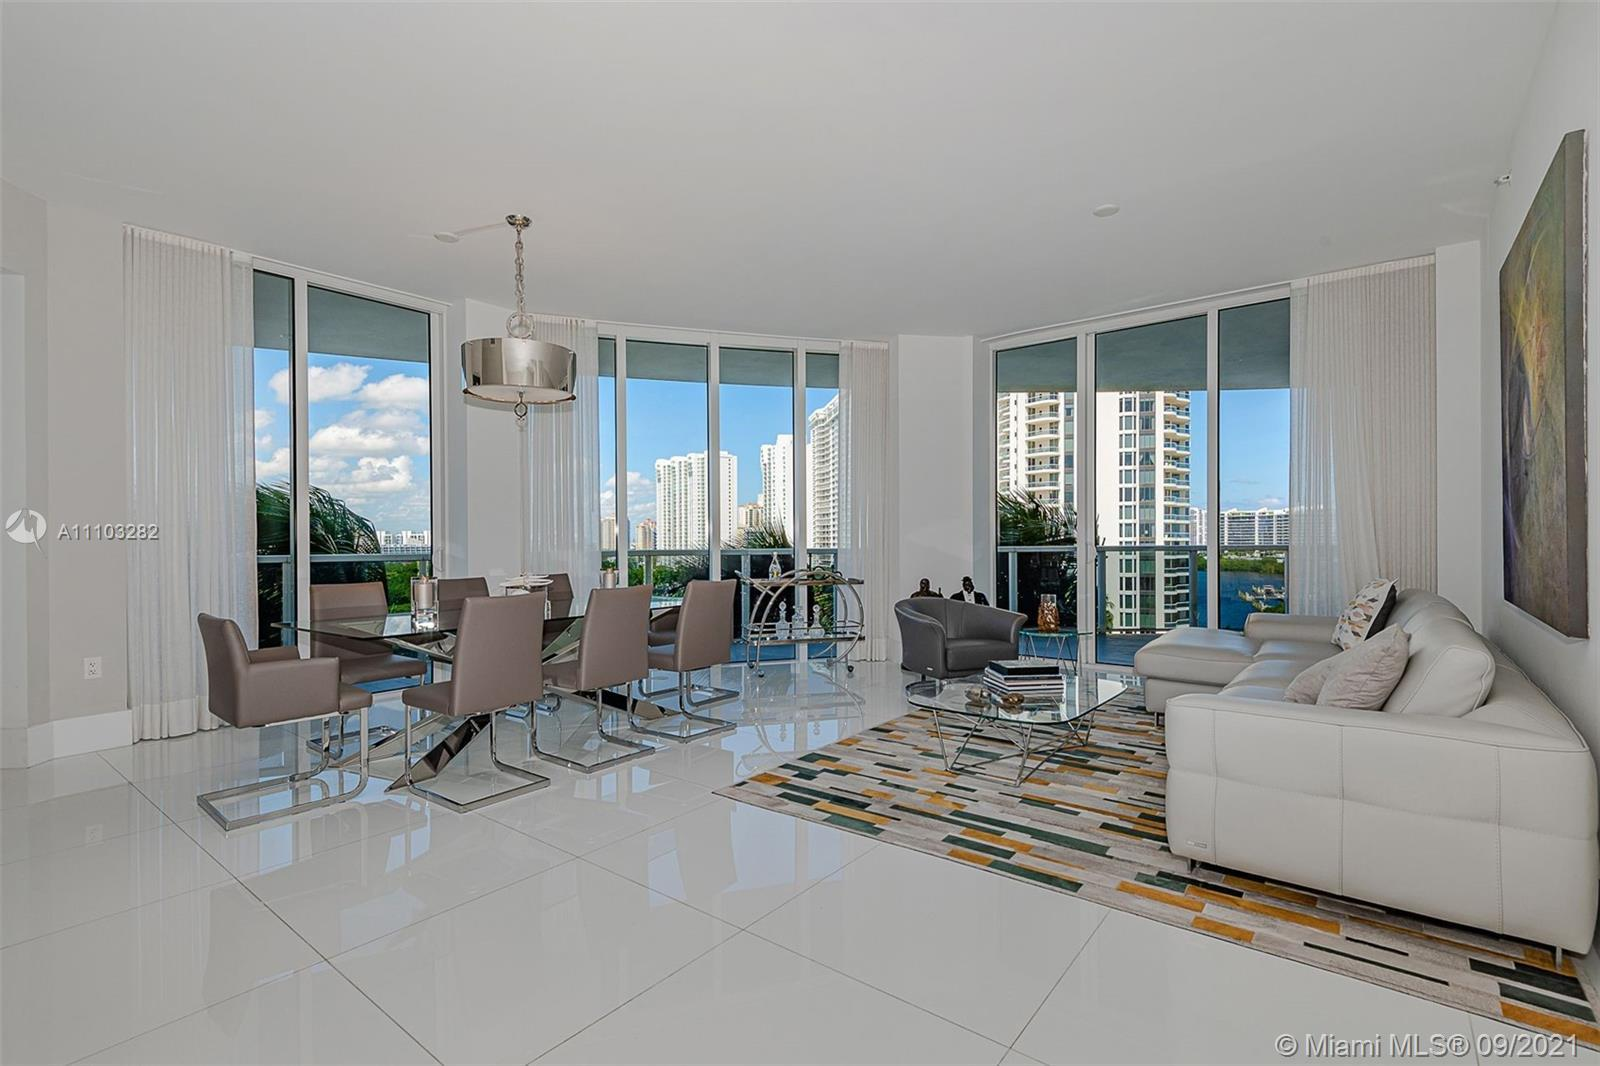 SPECTACULAR RESIDENCE WITH AMAZING VIEWS OF OCEAN, CITY AND INTRACOASTAL. SPACIOUS 3 BED & 3.5 BATHS